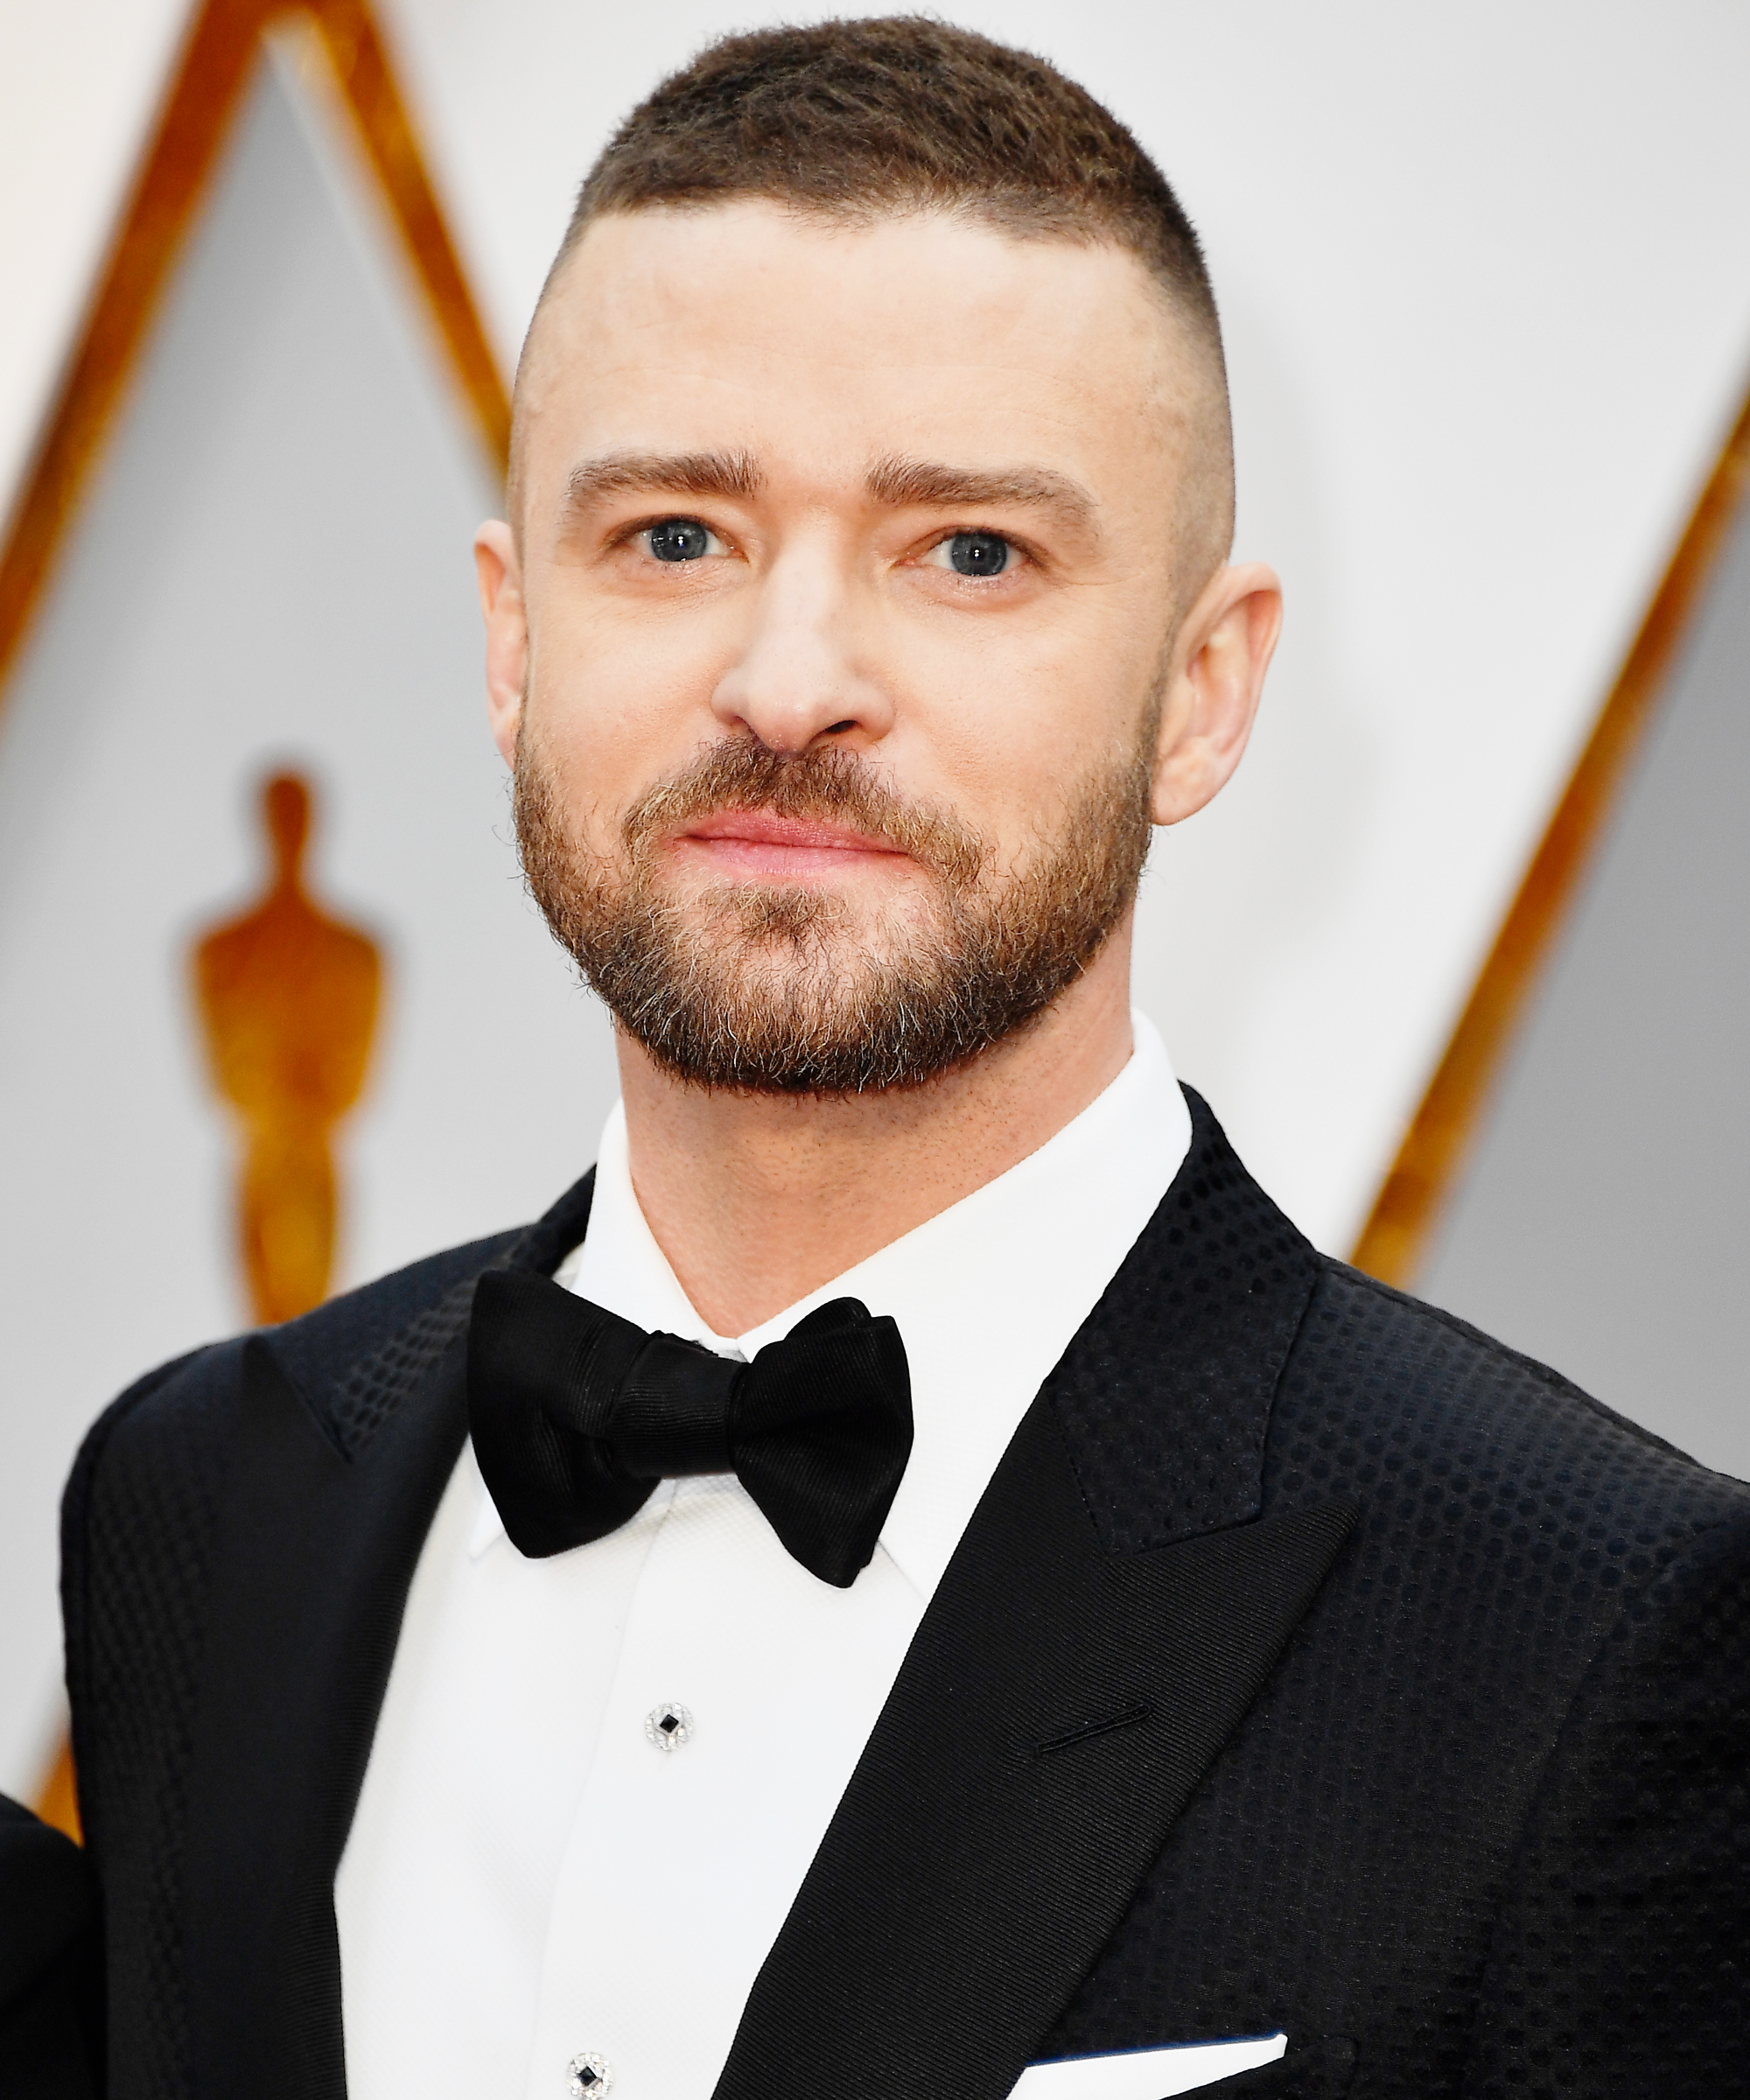 justin timberlake - photo #34